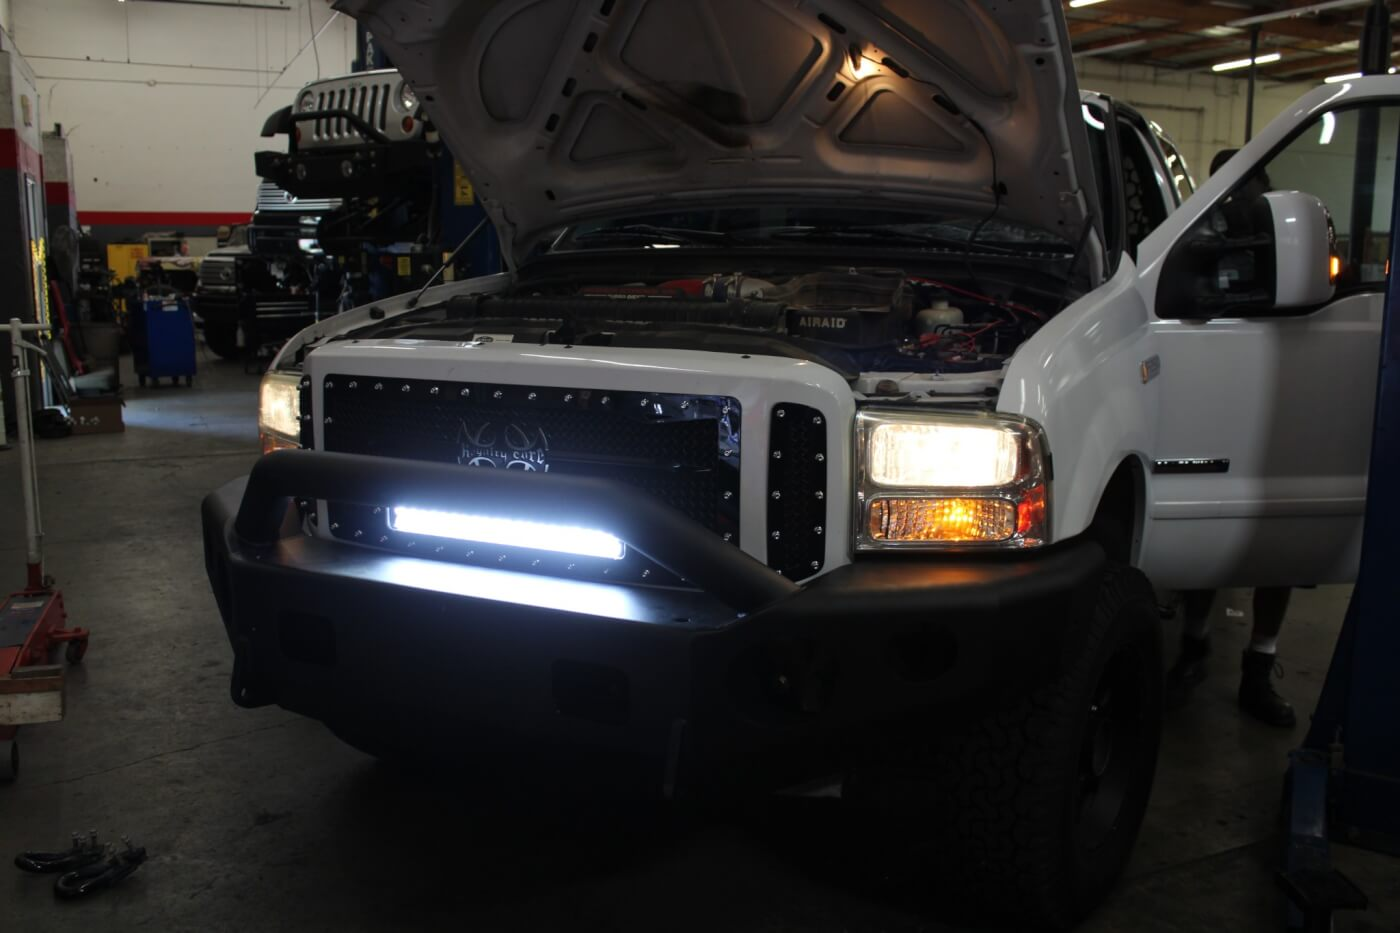 18. A quick check verifies that the Vision X light bar is working and also gives us a glimpse of what the truck will look like after dark with the light bar on. Our installation is wired so that the light bar can only be switched on with the headlights.